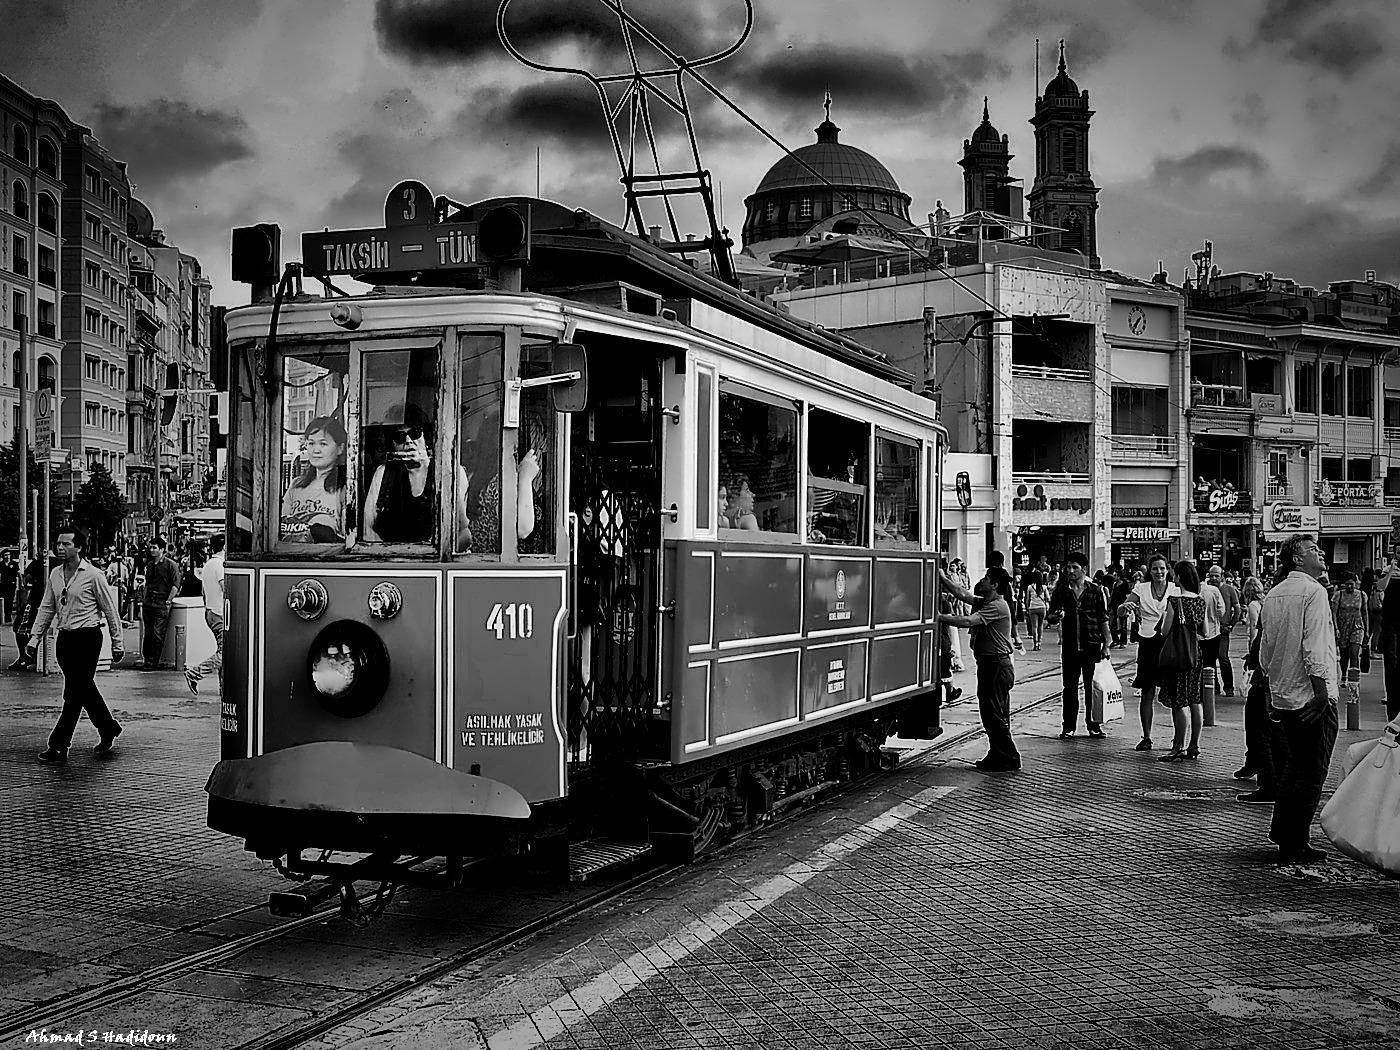 Photograph welcome to taksim square by ahmad hadidoun on 500px